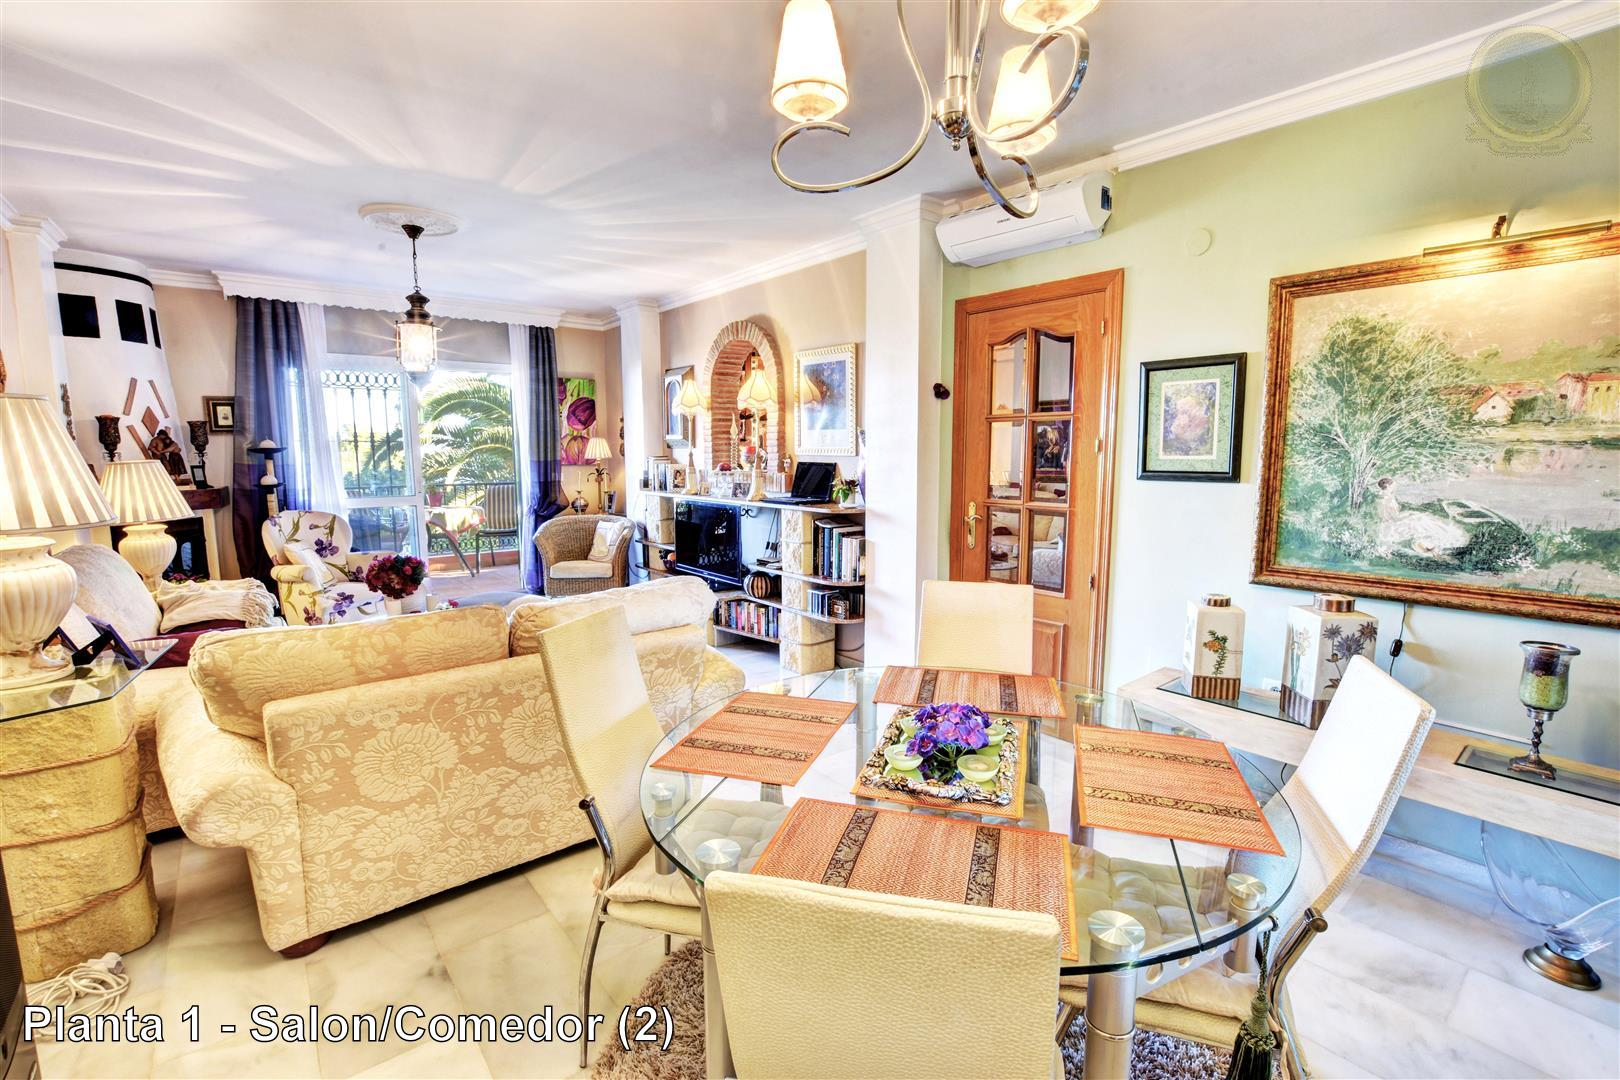 villa for sale in Benalmadena Pueblo - View of Lounge